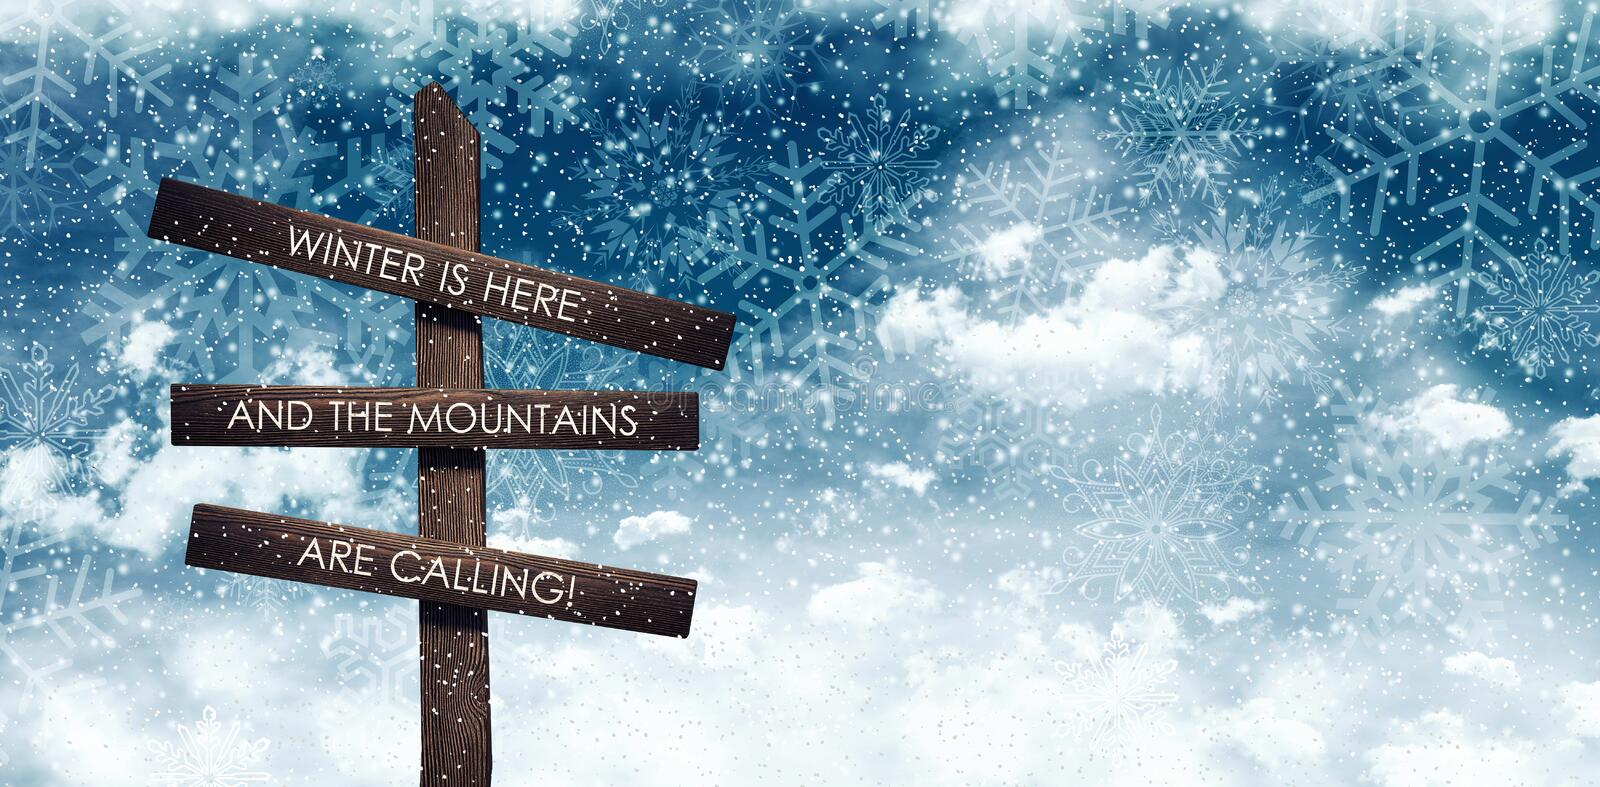 Mountains calling sign under night blue snowy sky stock illustration